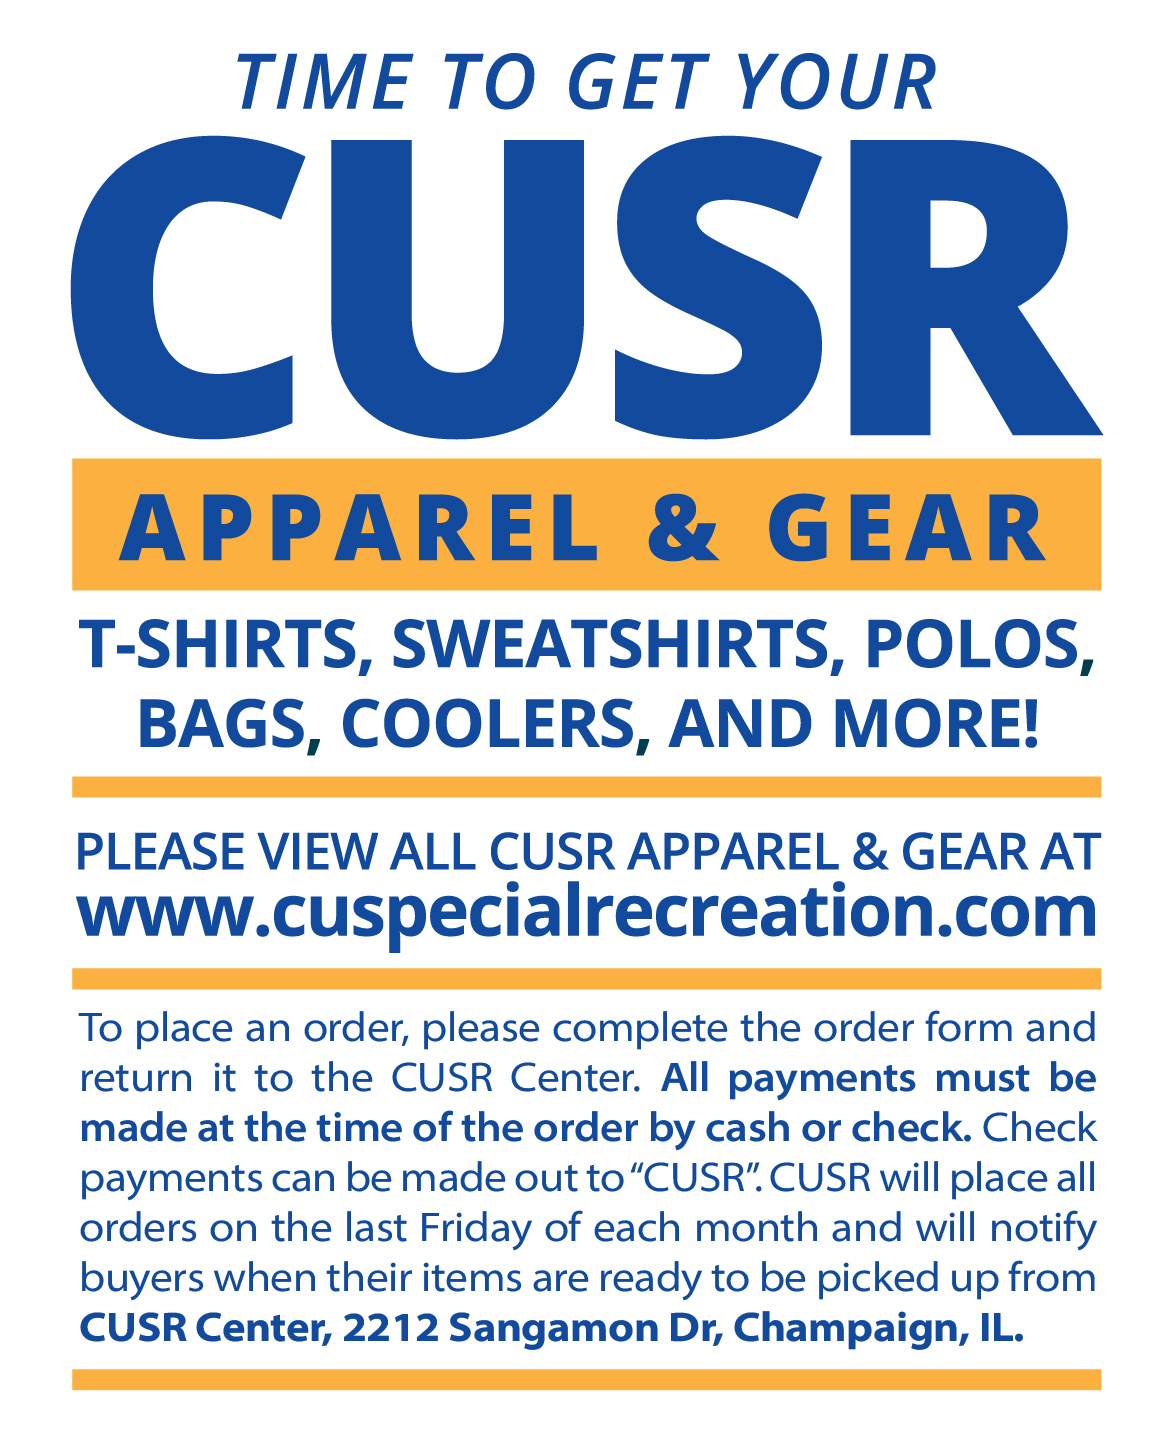 """Please View All CUSR Apparel & gear at www.cuspecialrecreation.com. To place an order, please complete the order form and return it to CUSR Center. All payments must be made at the time of the order by cash or check. Check payments can be made out to """"CUSR"""". CUSR will place all orders on the last Friday of each month and will notify buyers when their items are ready to be picked up from CUSR Center, 2212 Sangamon Dr, Champaign, IL"""